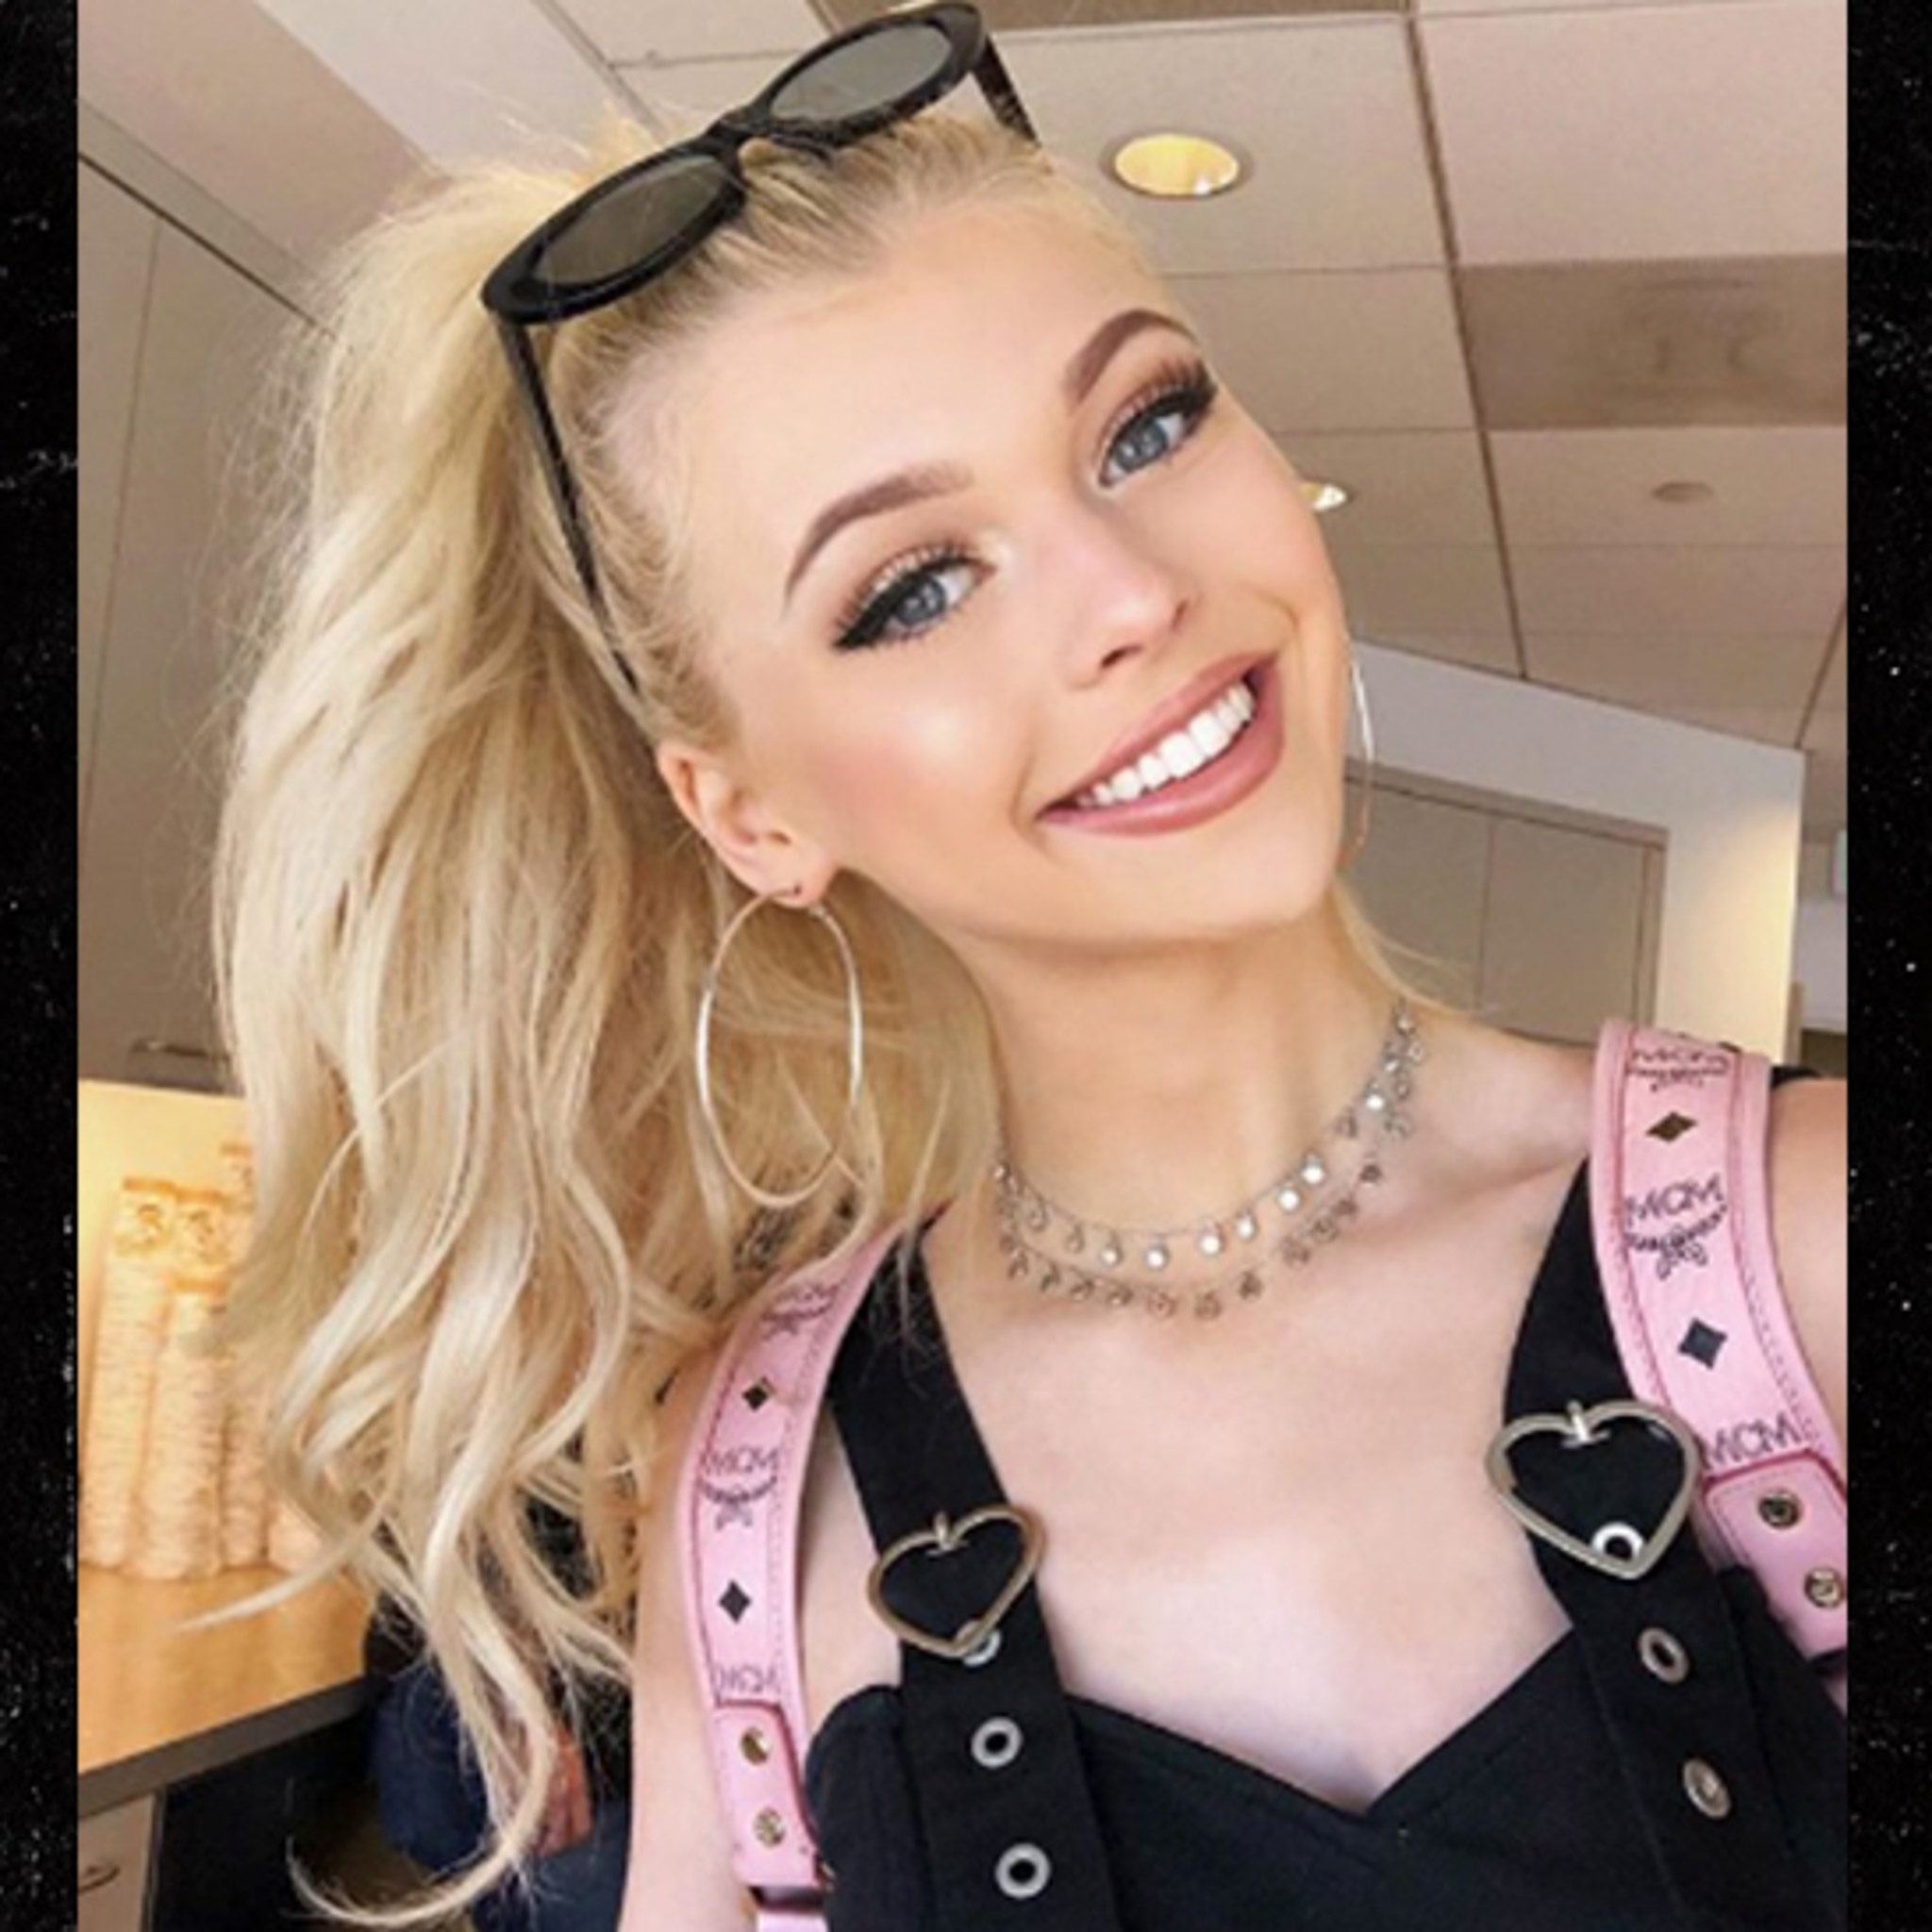 Youtube Star Loren Gray S Capitol Records Deal Pays Her Big Time